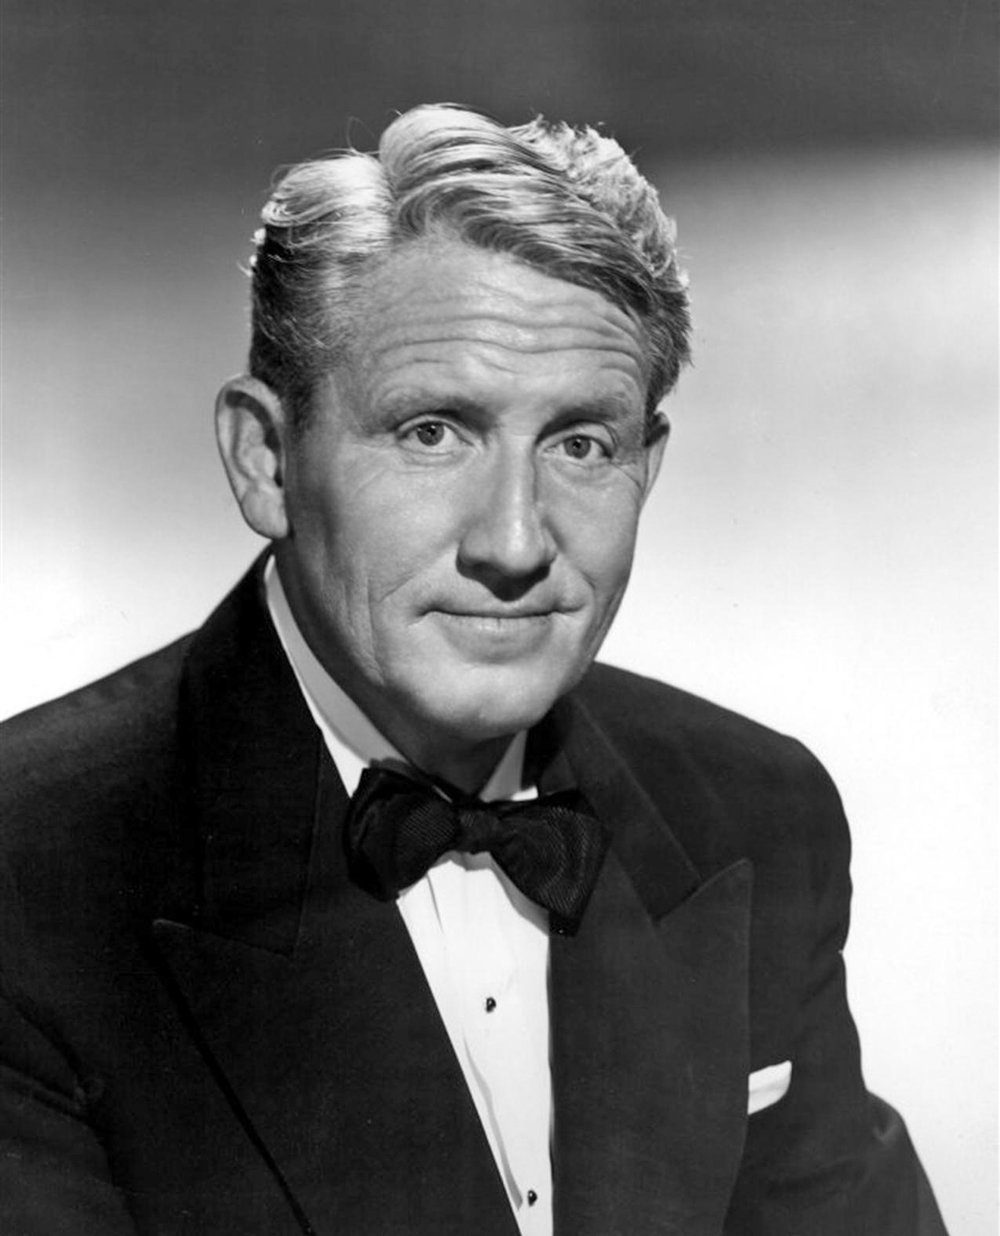 Spencer Tracy - At the San Sebastian Film Festival, Bette told an adoring audience that she wished she had been able to make a film with Spencer Tracy.